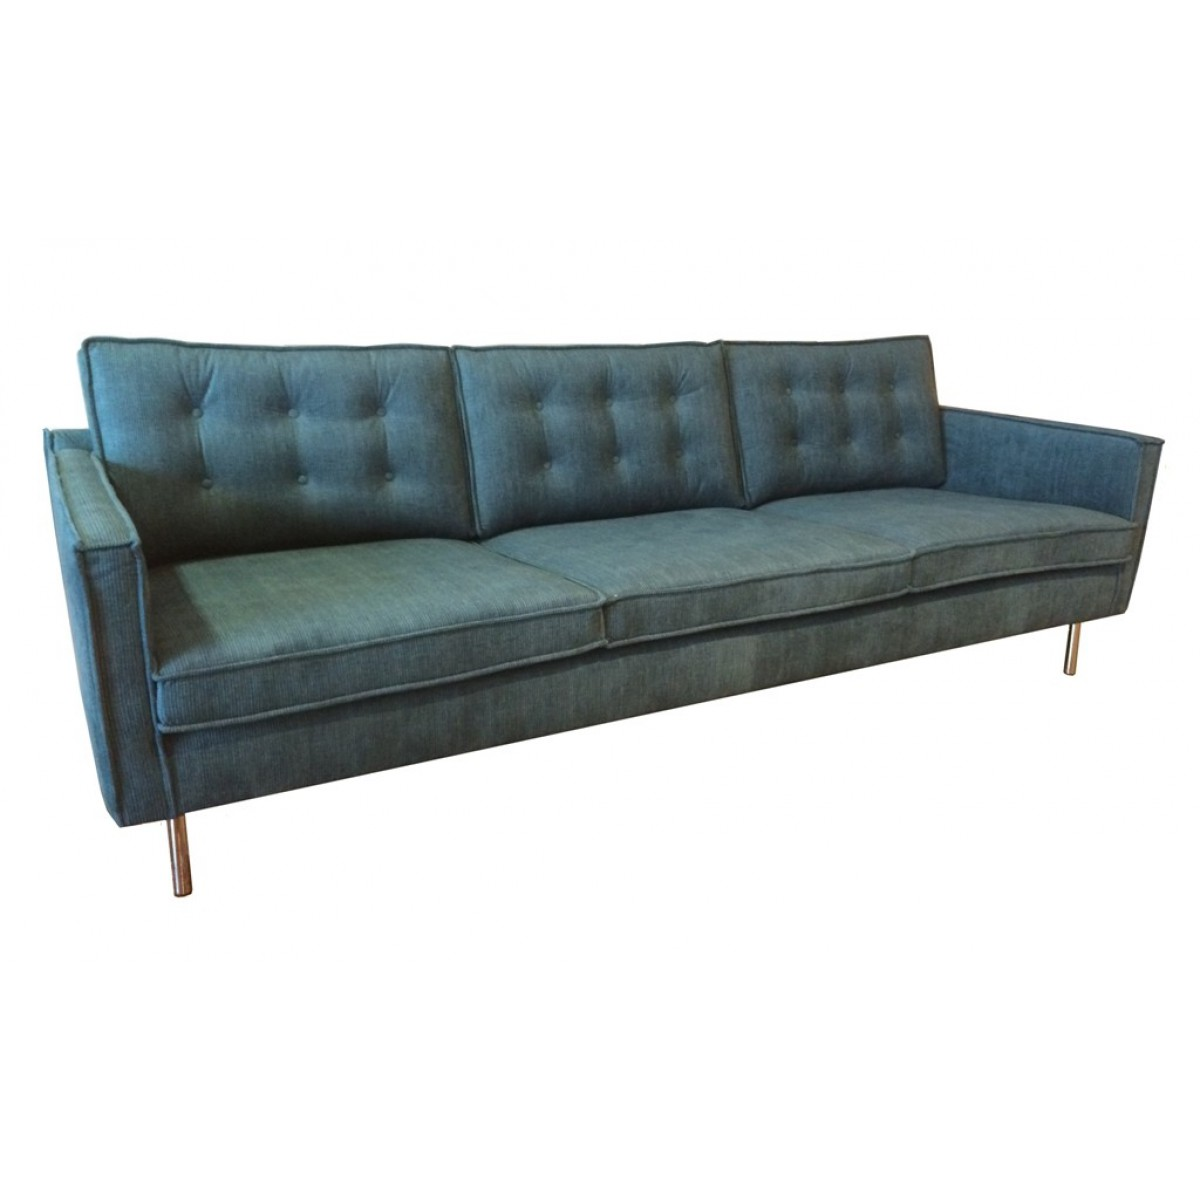 malm sofa retro sofa i live design preisg nstig online moebel kaufen. Black Bedroom Furniture Sets. Home Design Ideas